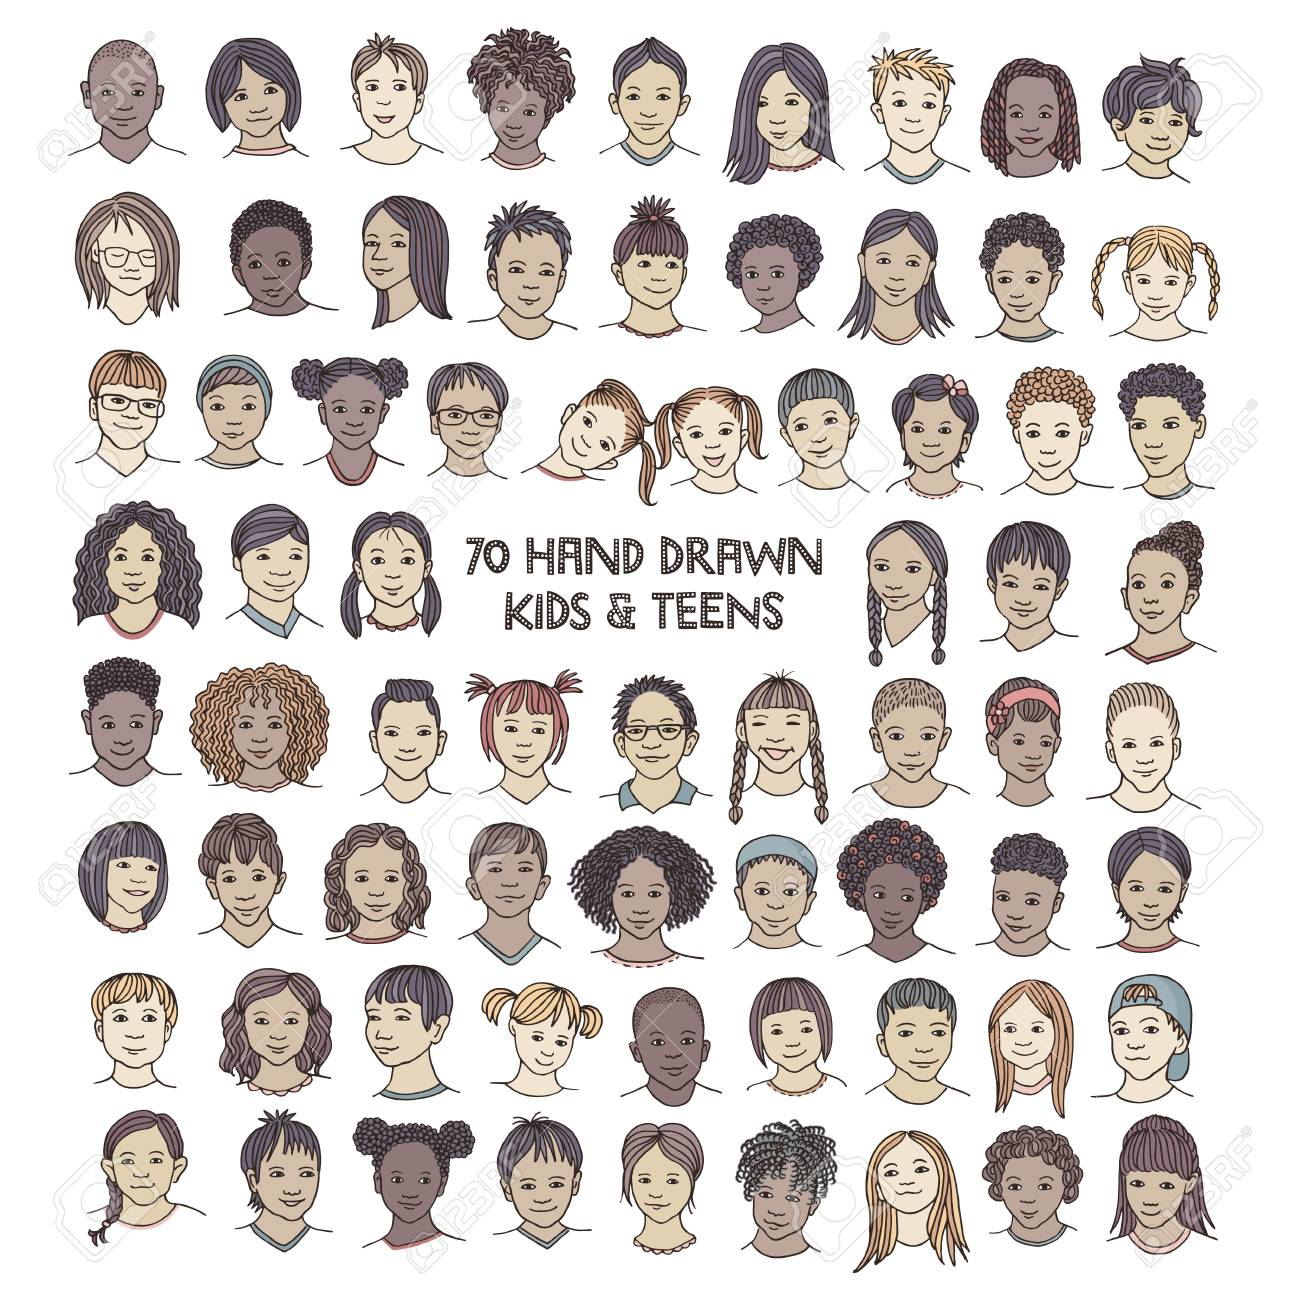 Set of seventy hand drawn children's faces, colorful and diverse portraits of kids and teens of different ethnicities - 117796649